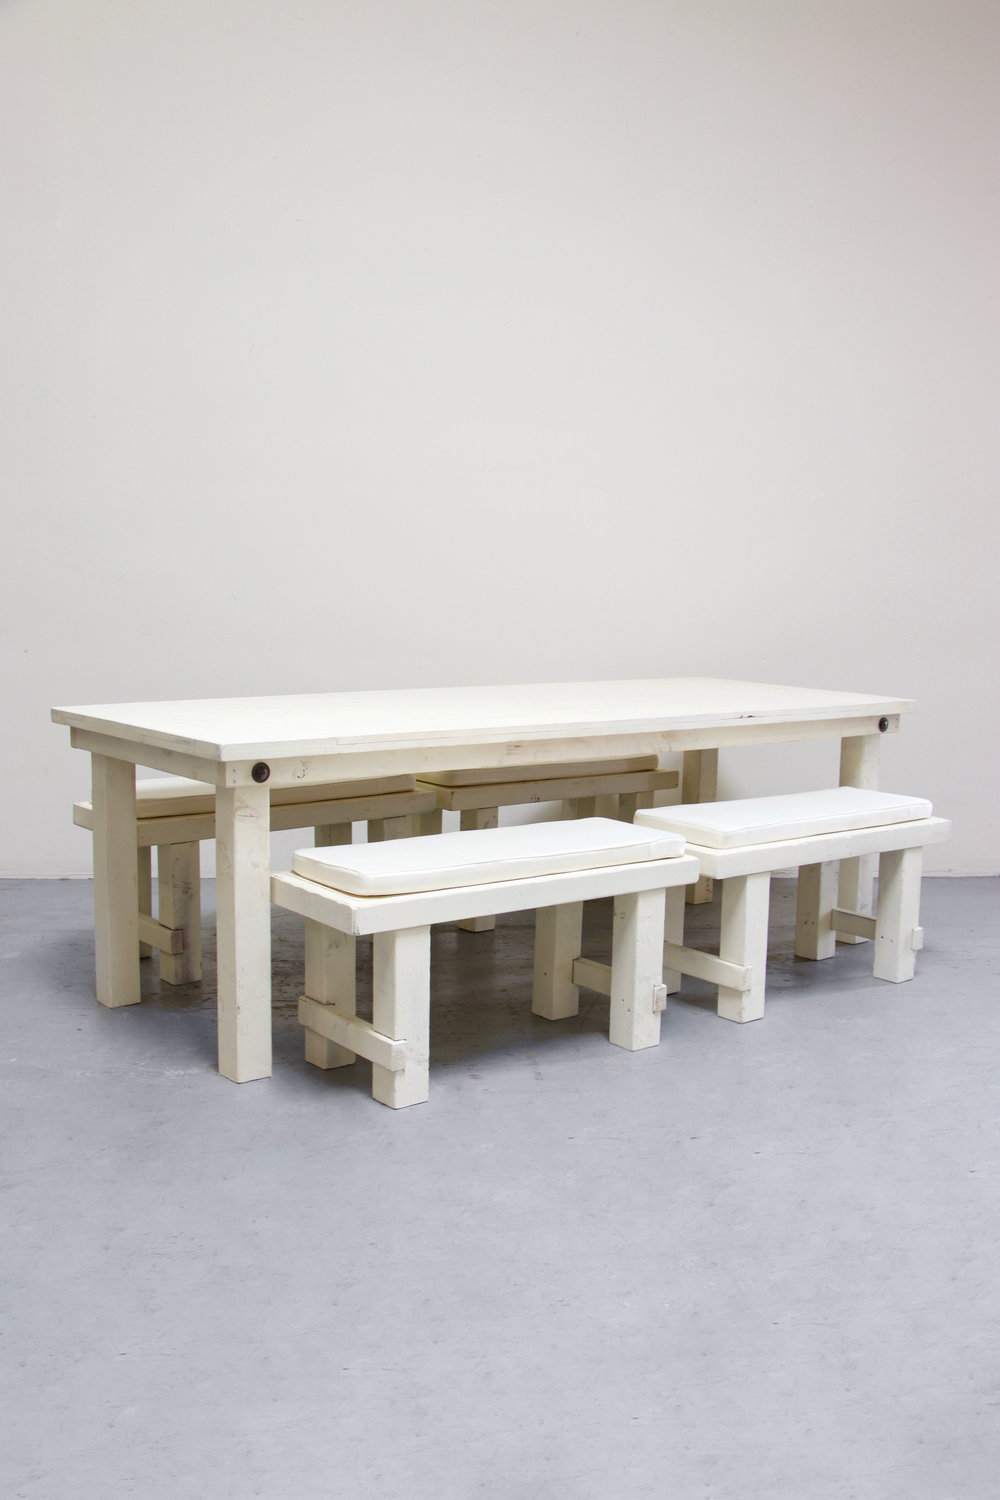 1 Vintage White Farm Table w/ 4 Short Benches $145